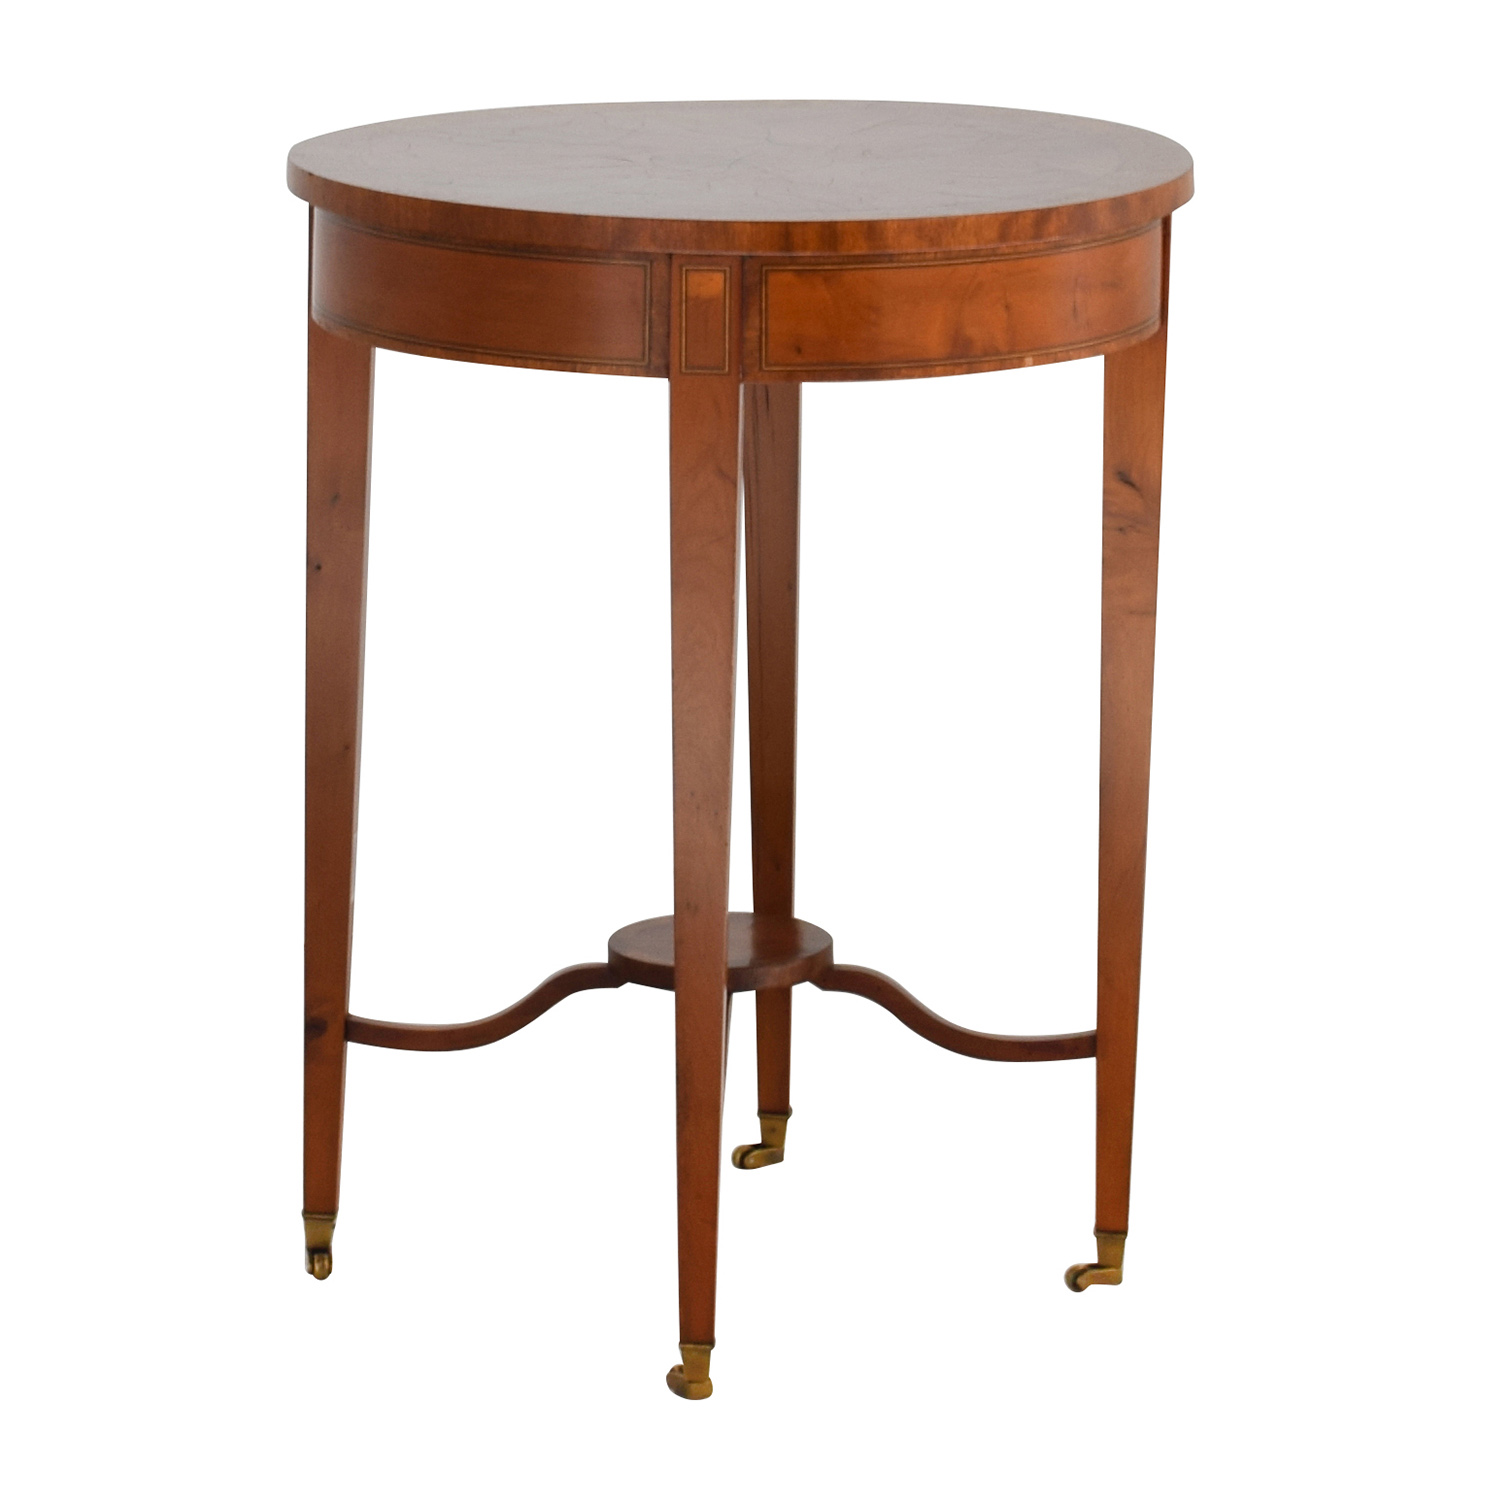 safavieh dining chairs dorm lounge chair 90% off - antiques inlaid wood antique side table / tables